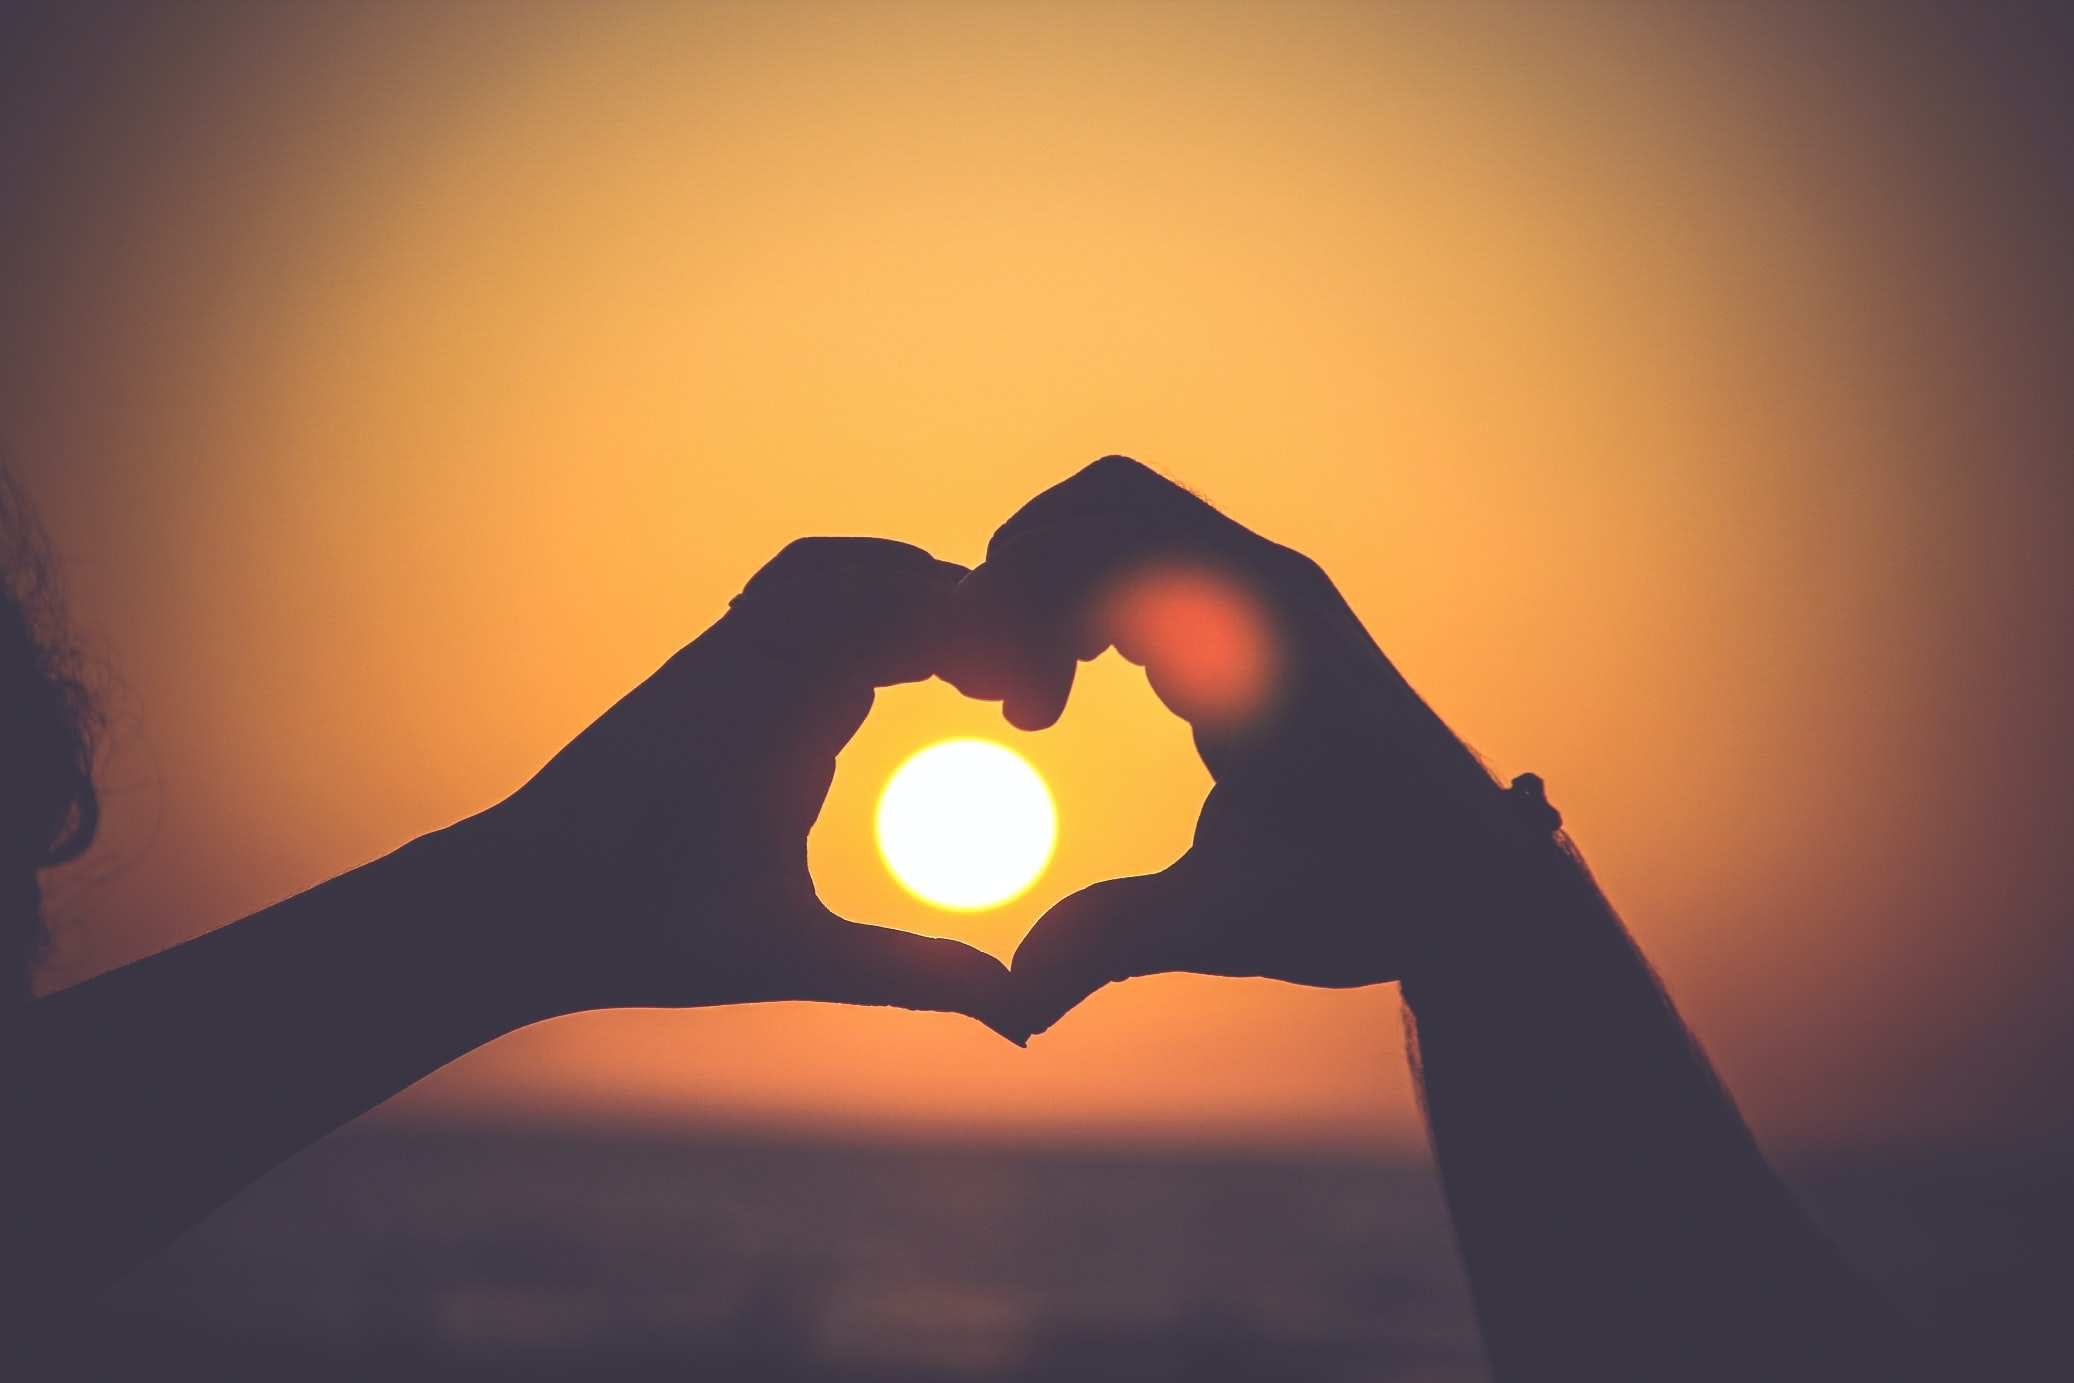 Hands in the silhouette of a heart outline the setting sun on a beach